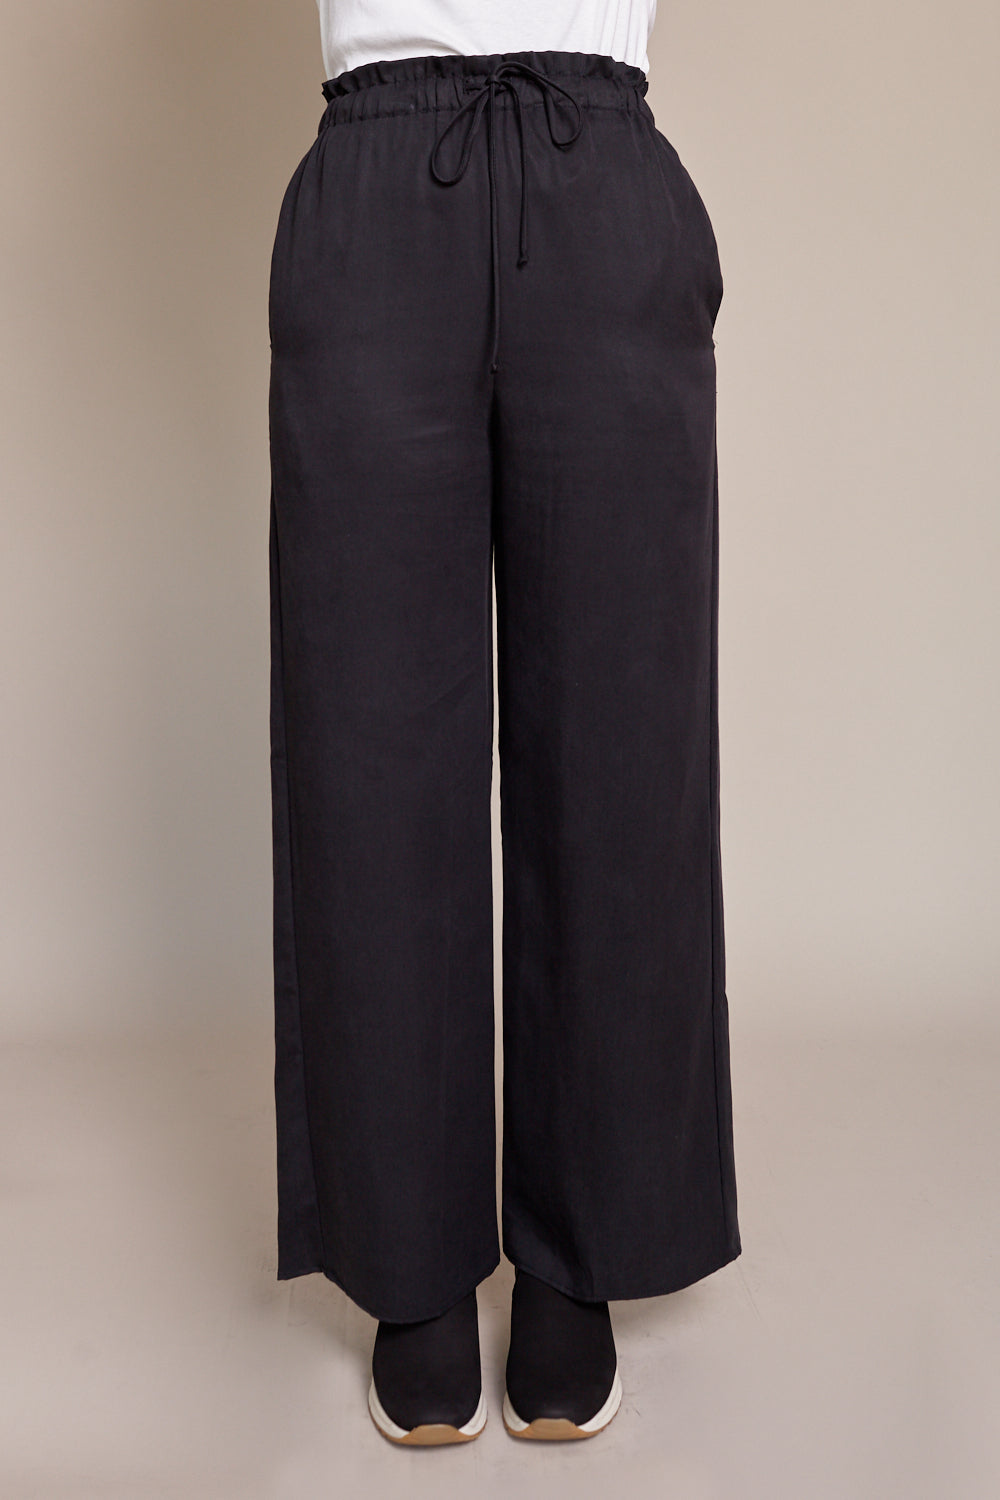 Lounge Pant in Onyx